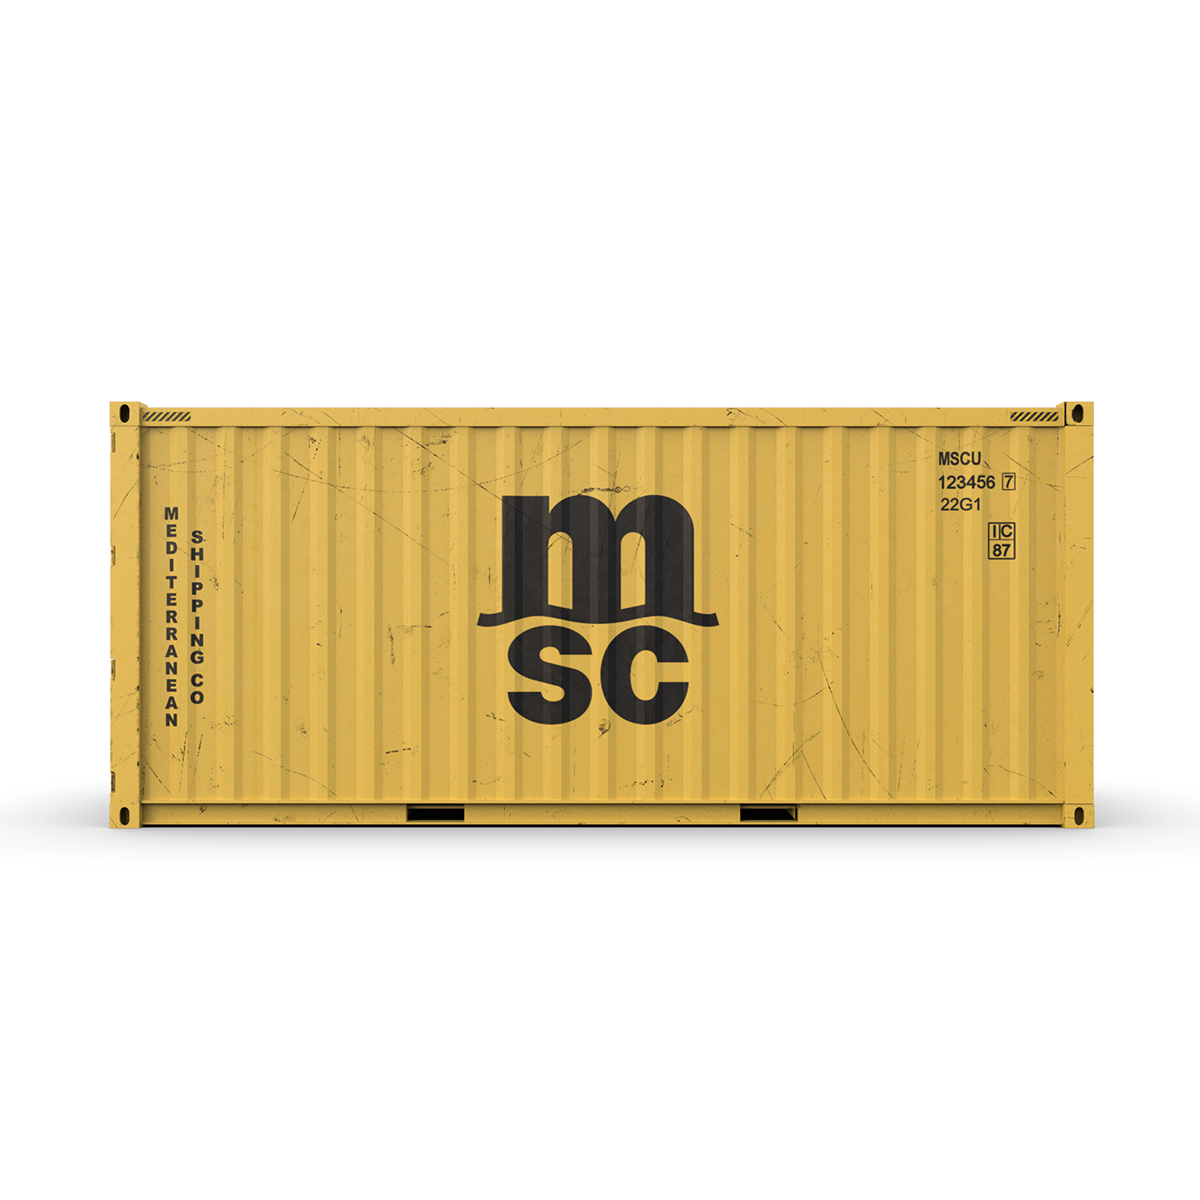 20 feet msc standard shipping container 3d model 3ds max fbx ma mb obj 278384